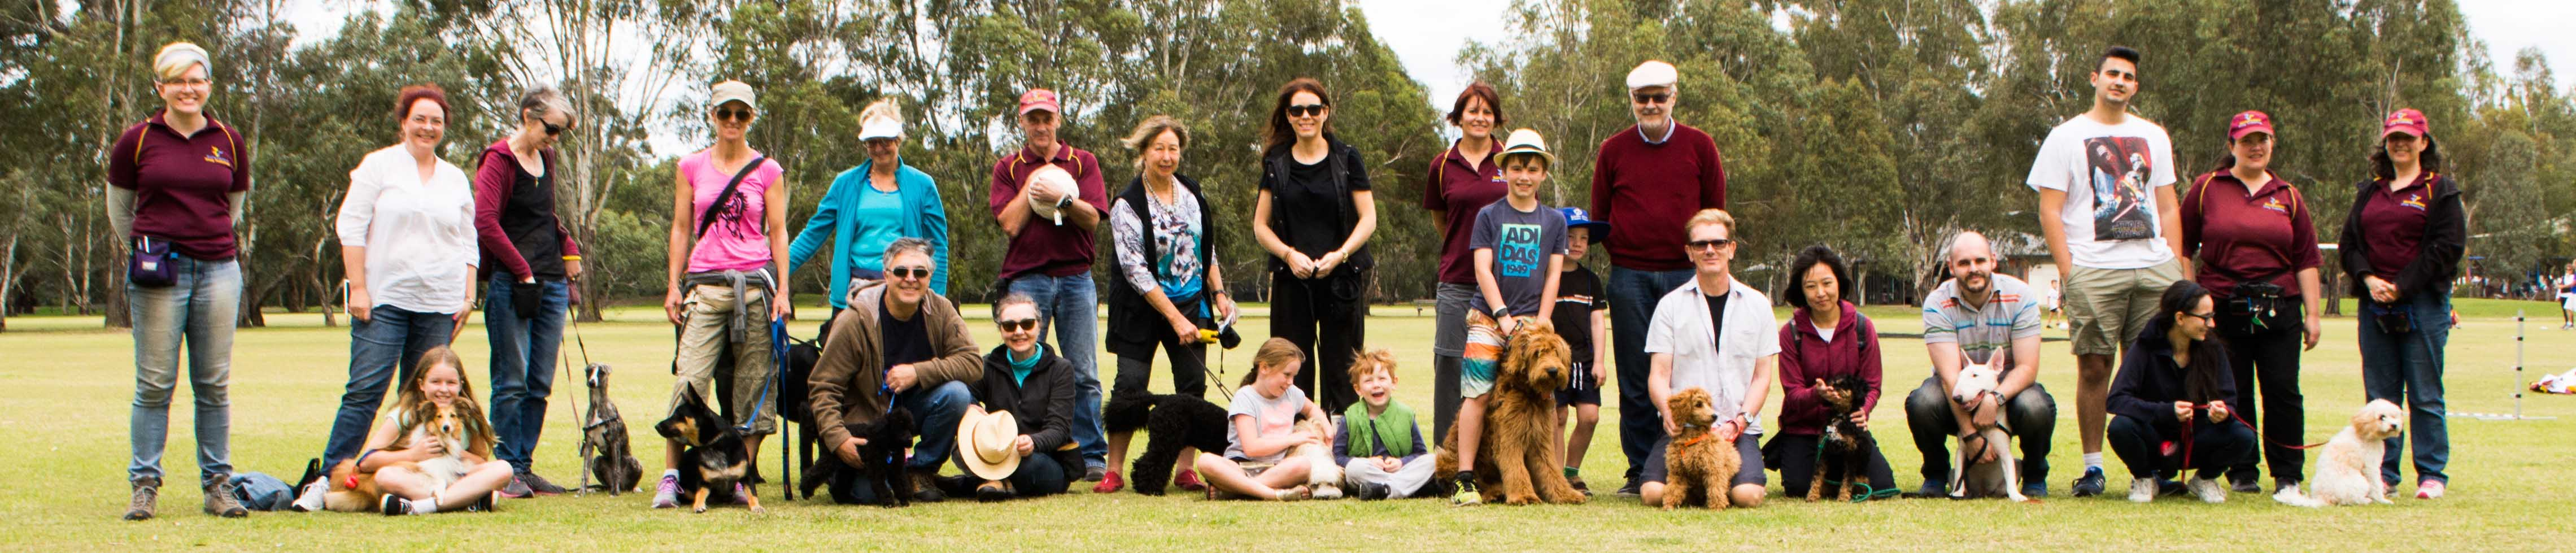 Boroondara Dog Training Group Photo